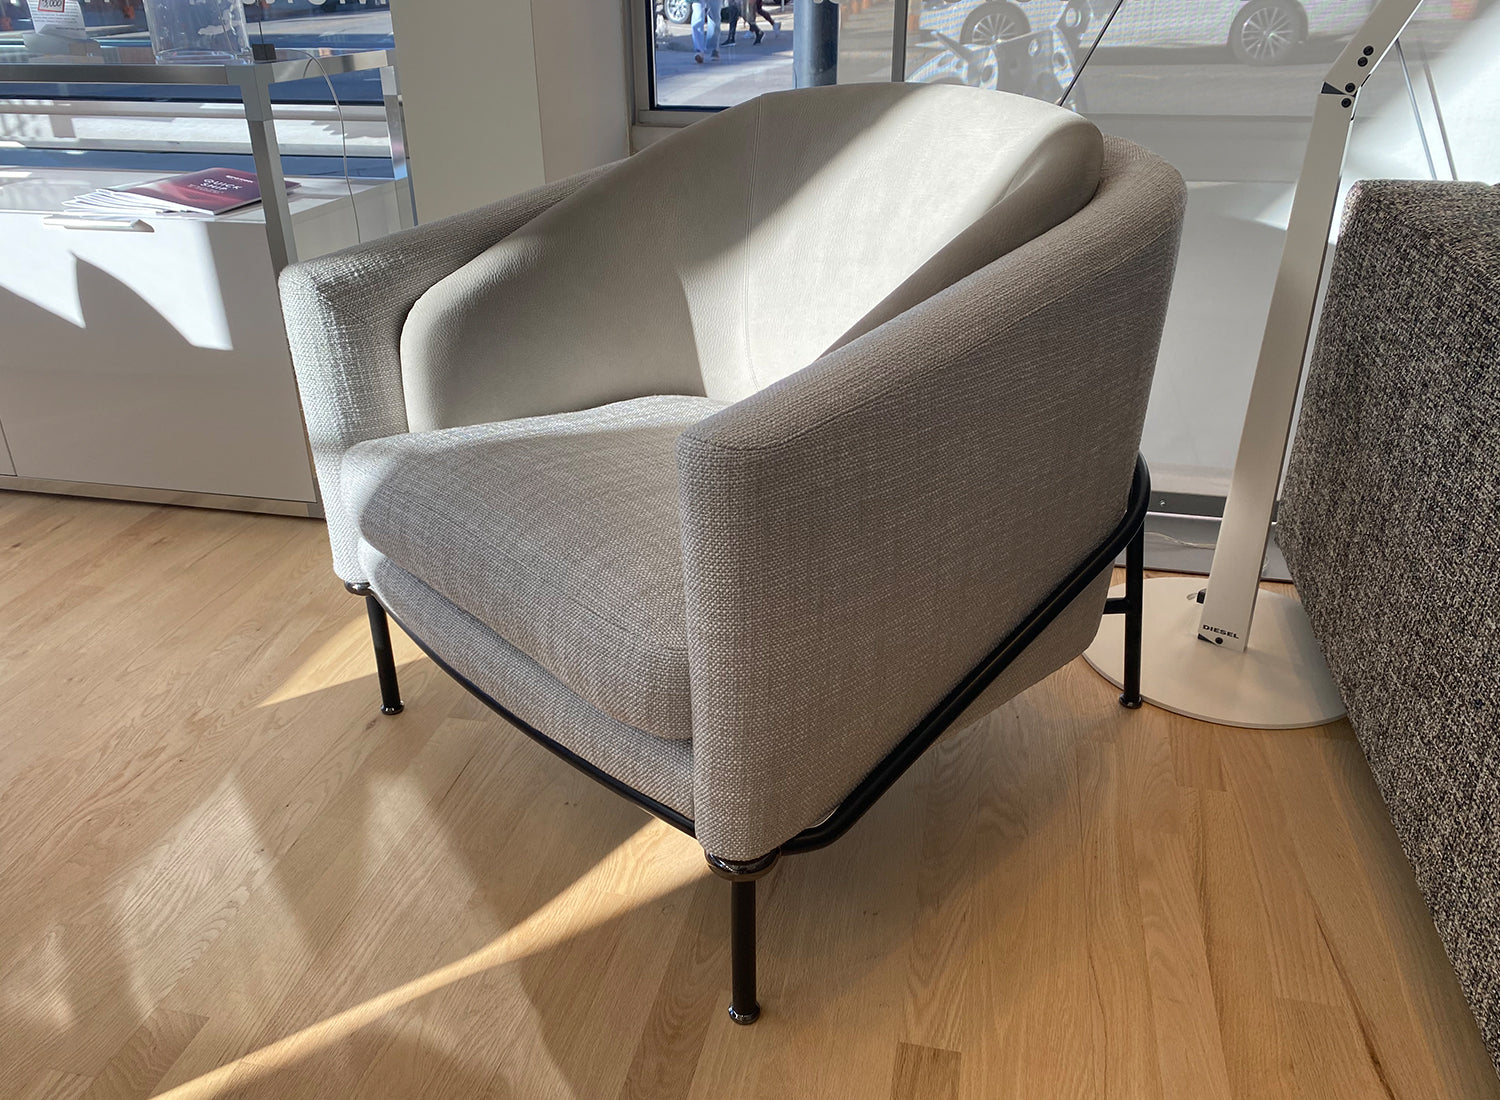 Fil Noir Armchair - Floor Model Sale